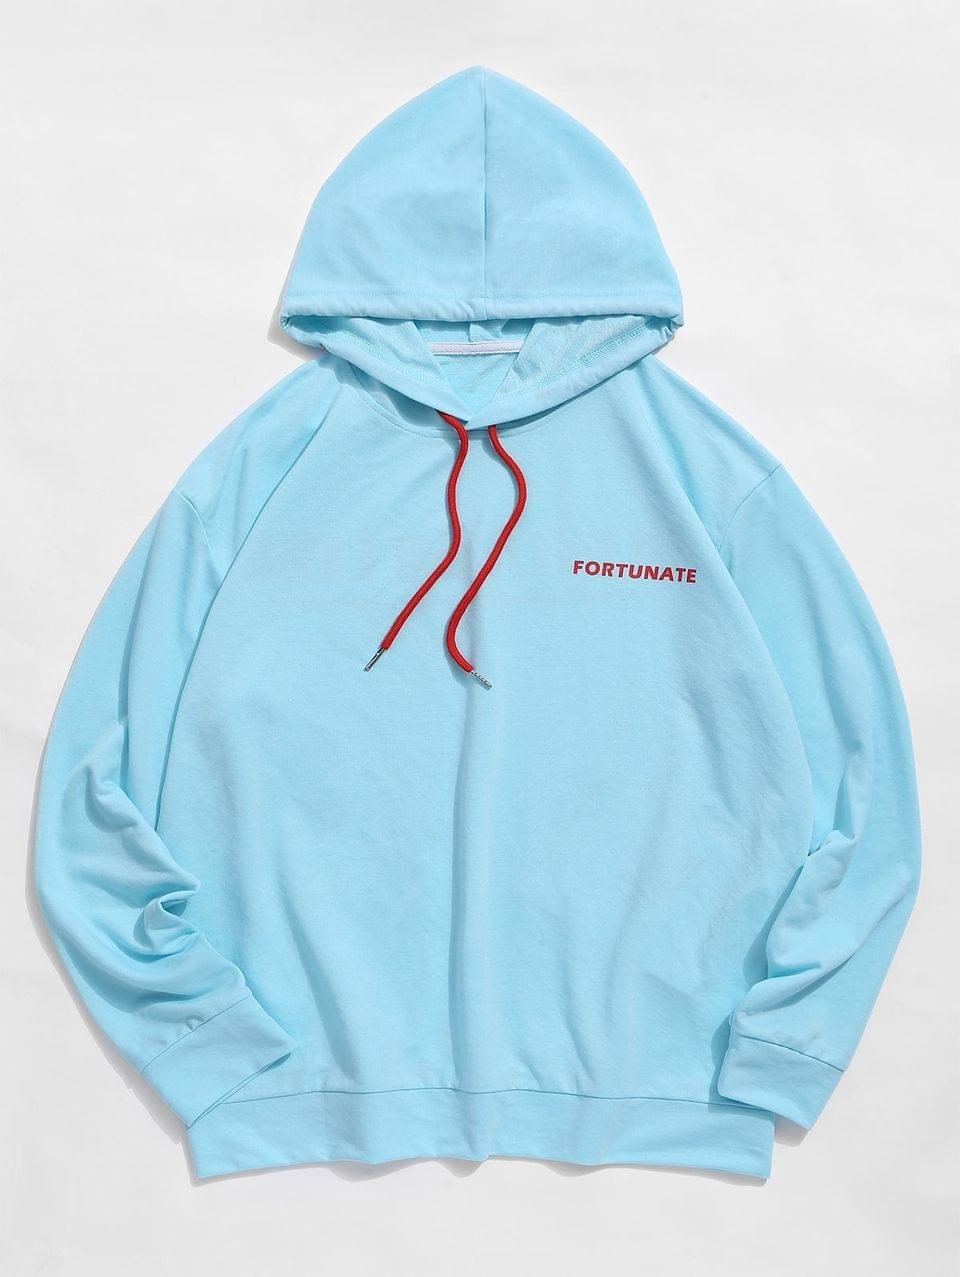 Men's Letter Printed Drawstring Casual Hoodie - Day Sky Blue S